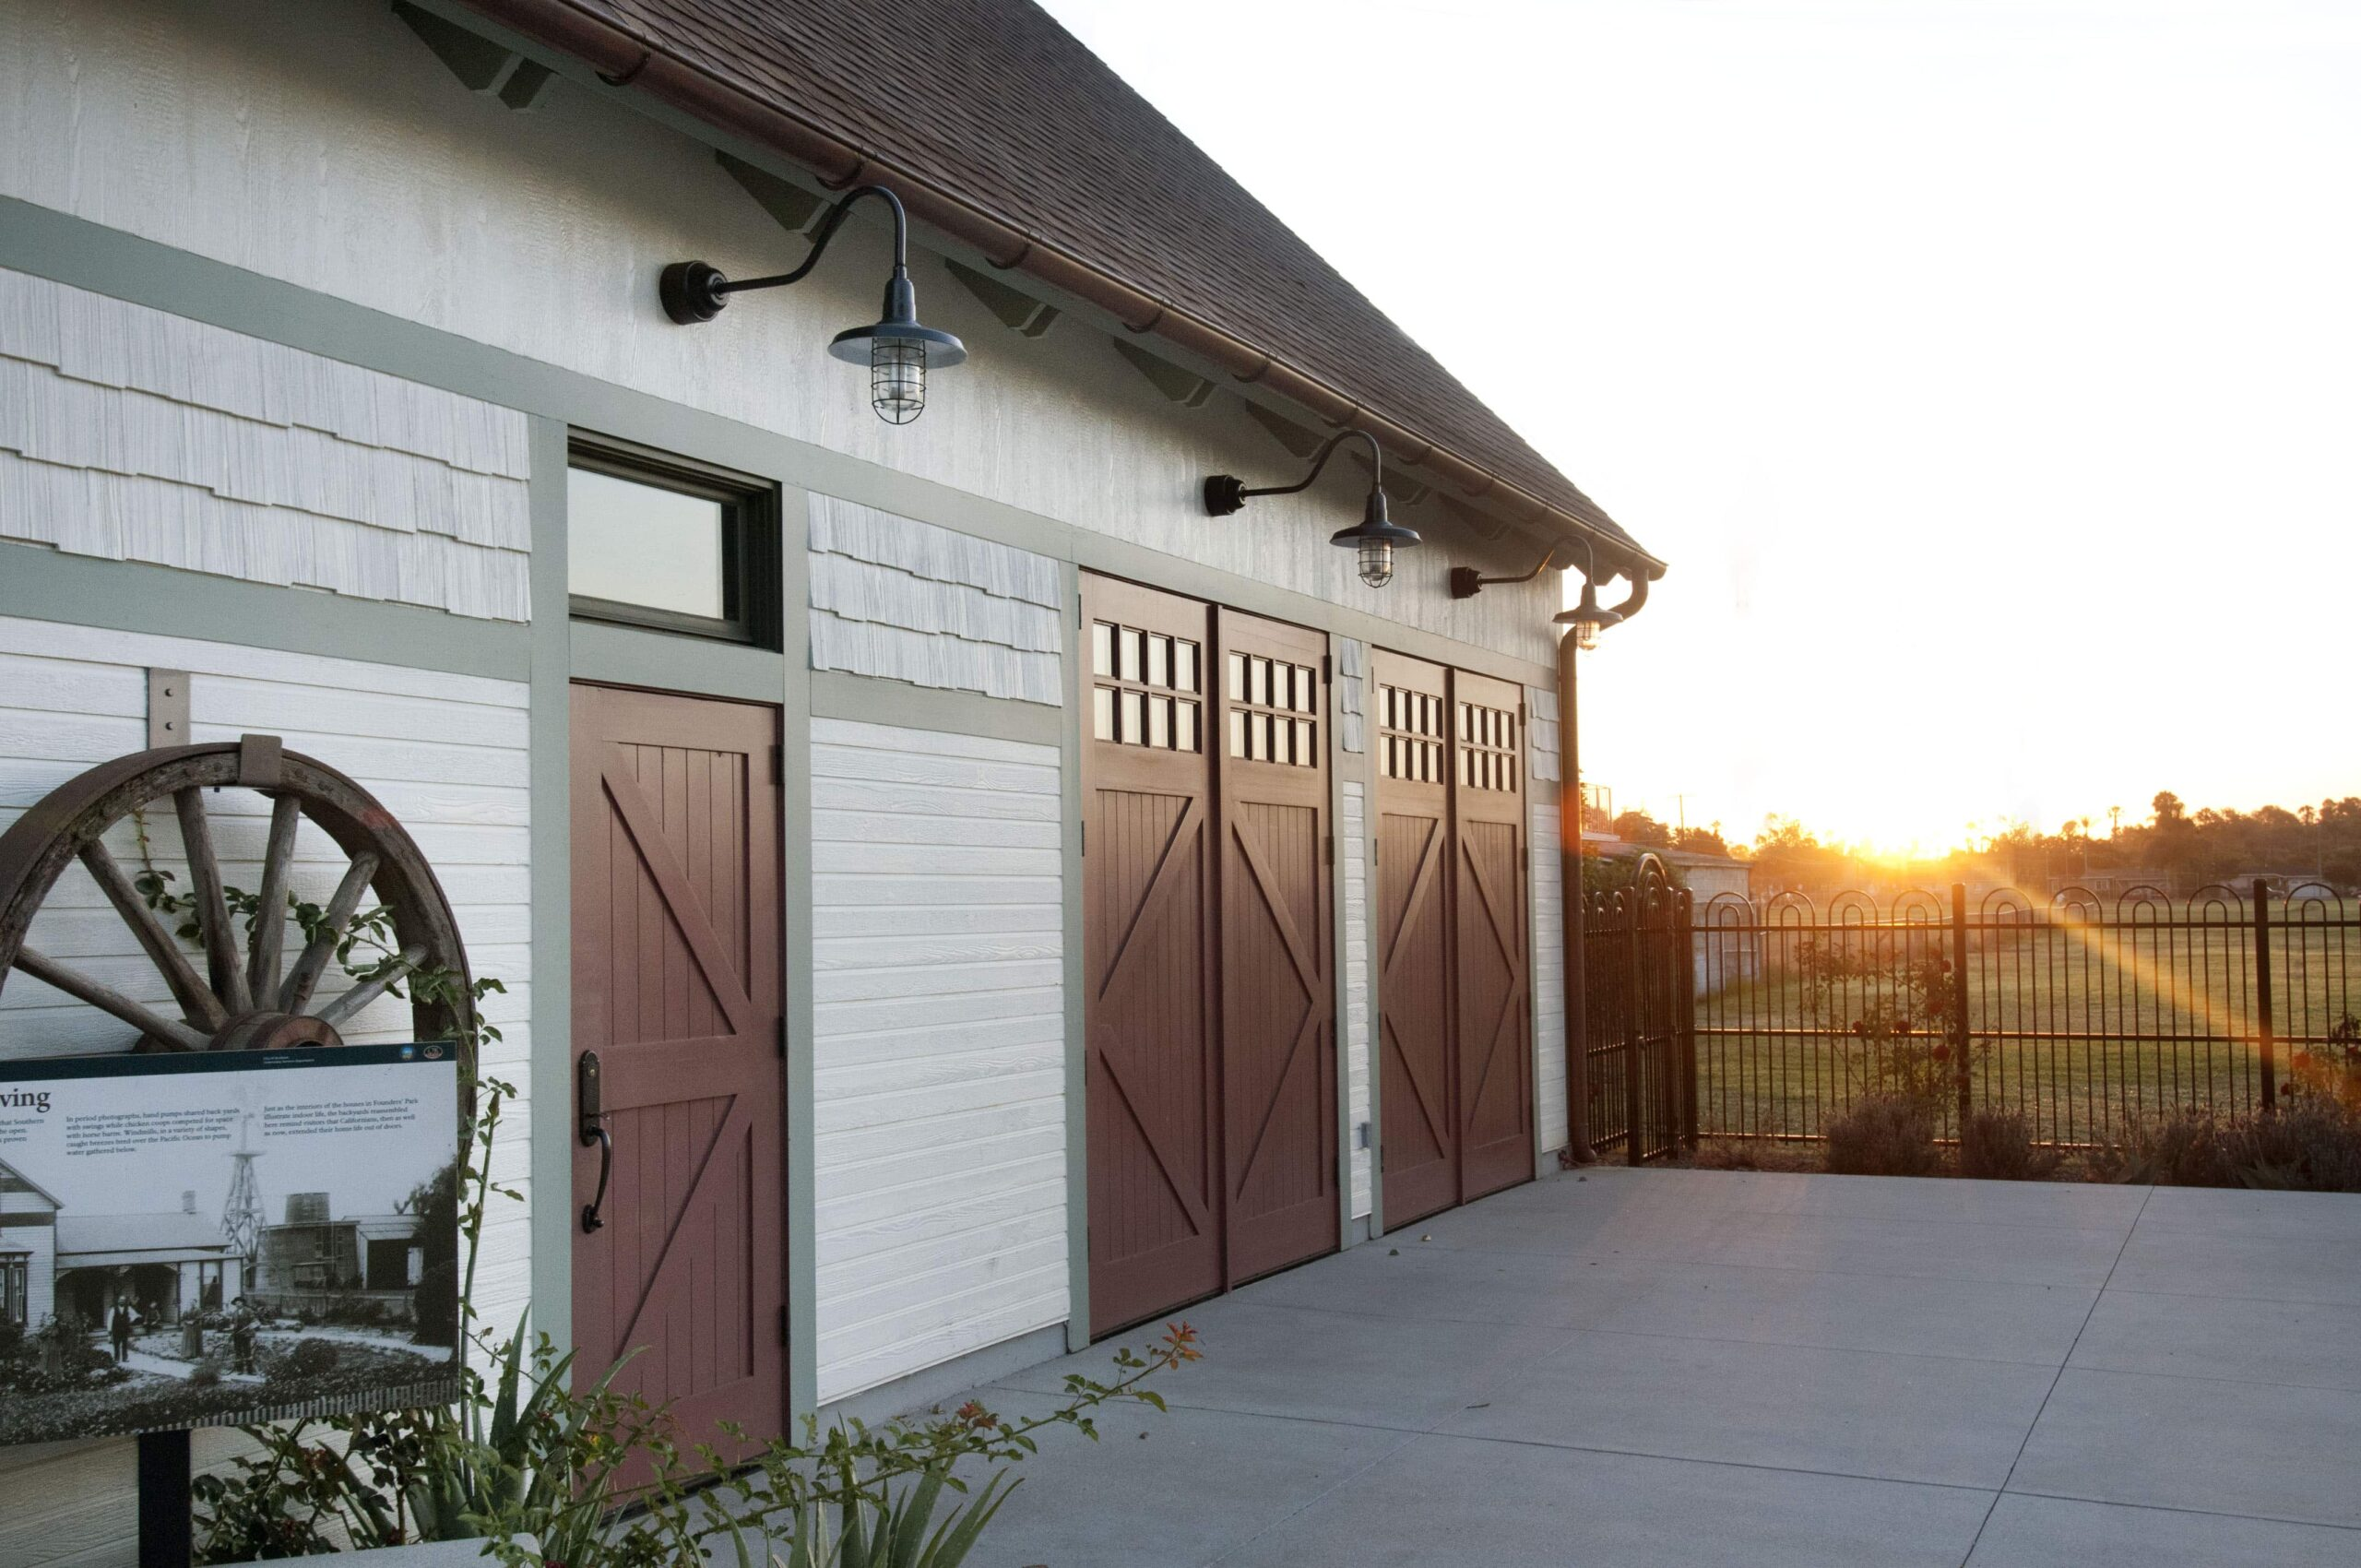 4. ECL15B Design – Square top entry door w/ transom: Classic British X brace w/ tongue + groove panels (no lites), painted, w/ butt hinges & Custom Design – Square top, (2x4) lites, Diamond brace w/ tongue + groove panels, painted, w/ butt hinges; Founder's Park - Anaheim, CA